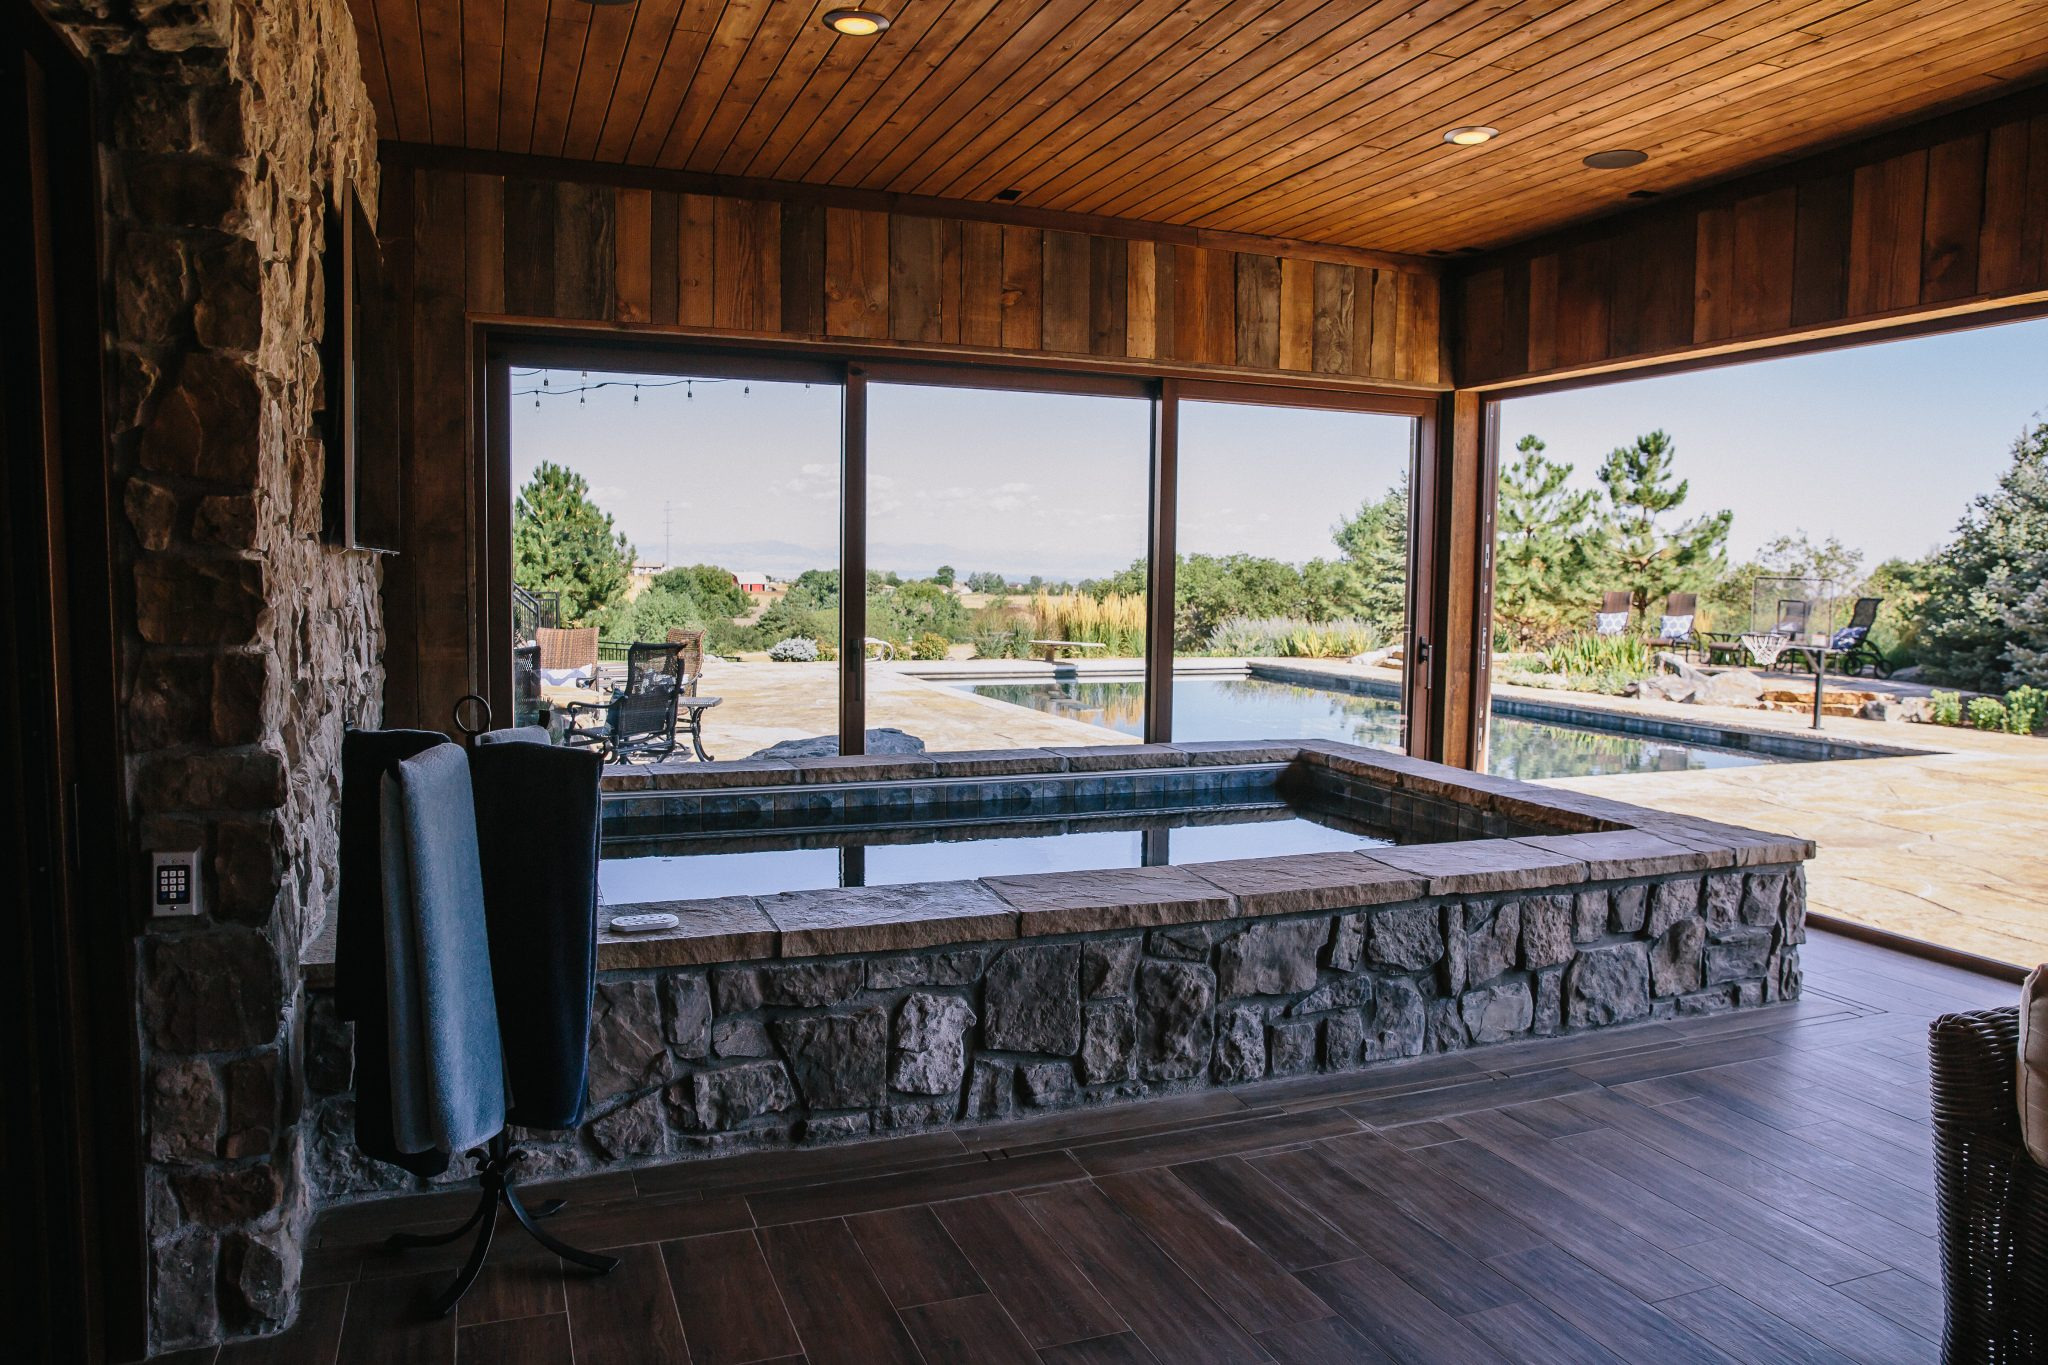 Two lift slide doors open the hot tub area to the patio and pool